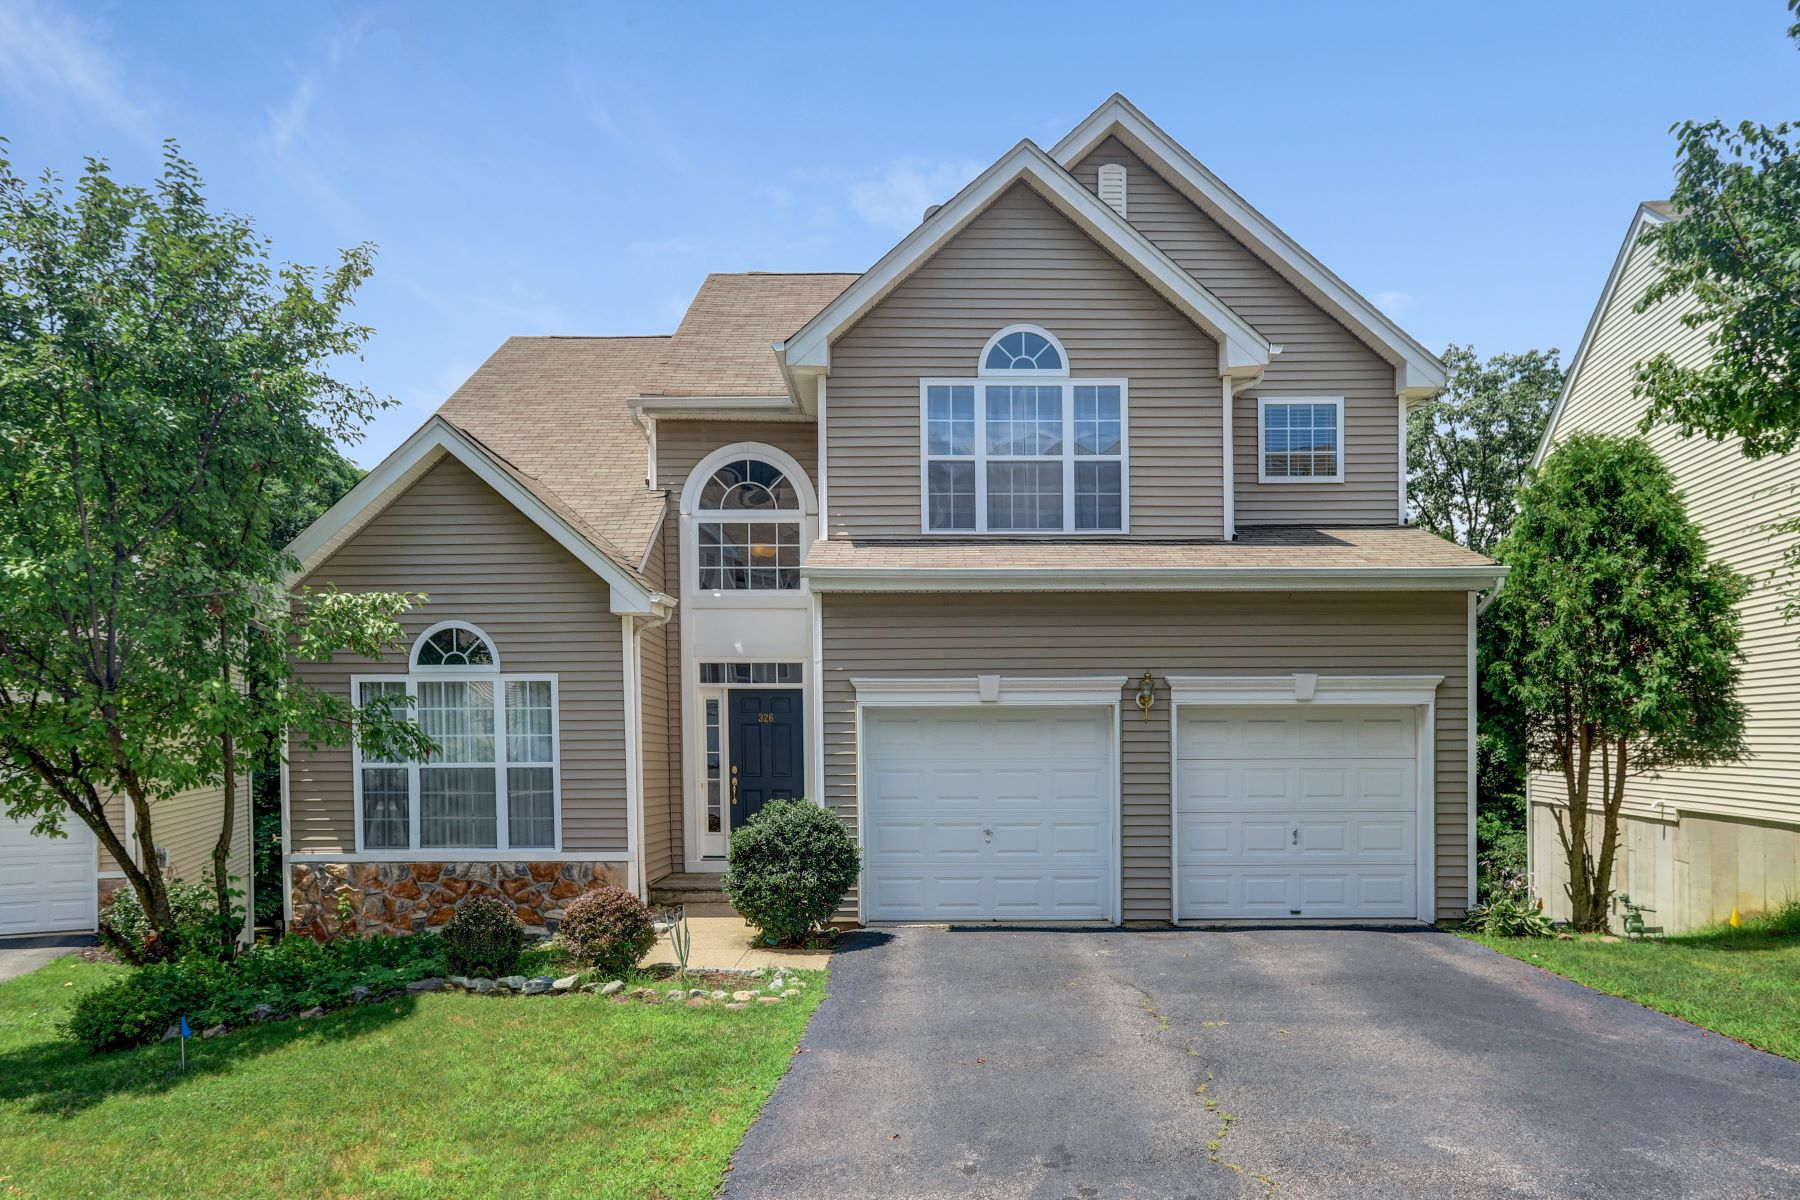 Single Family Homes for Sale at Beautiful Colonial 326 Winding Hill Drive Mount Olive, New Jersey 07840 United States